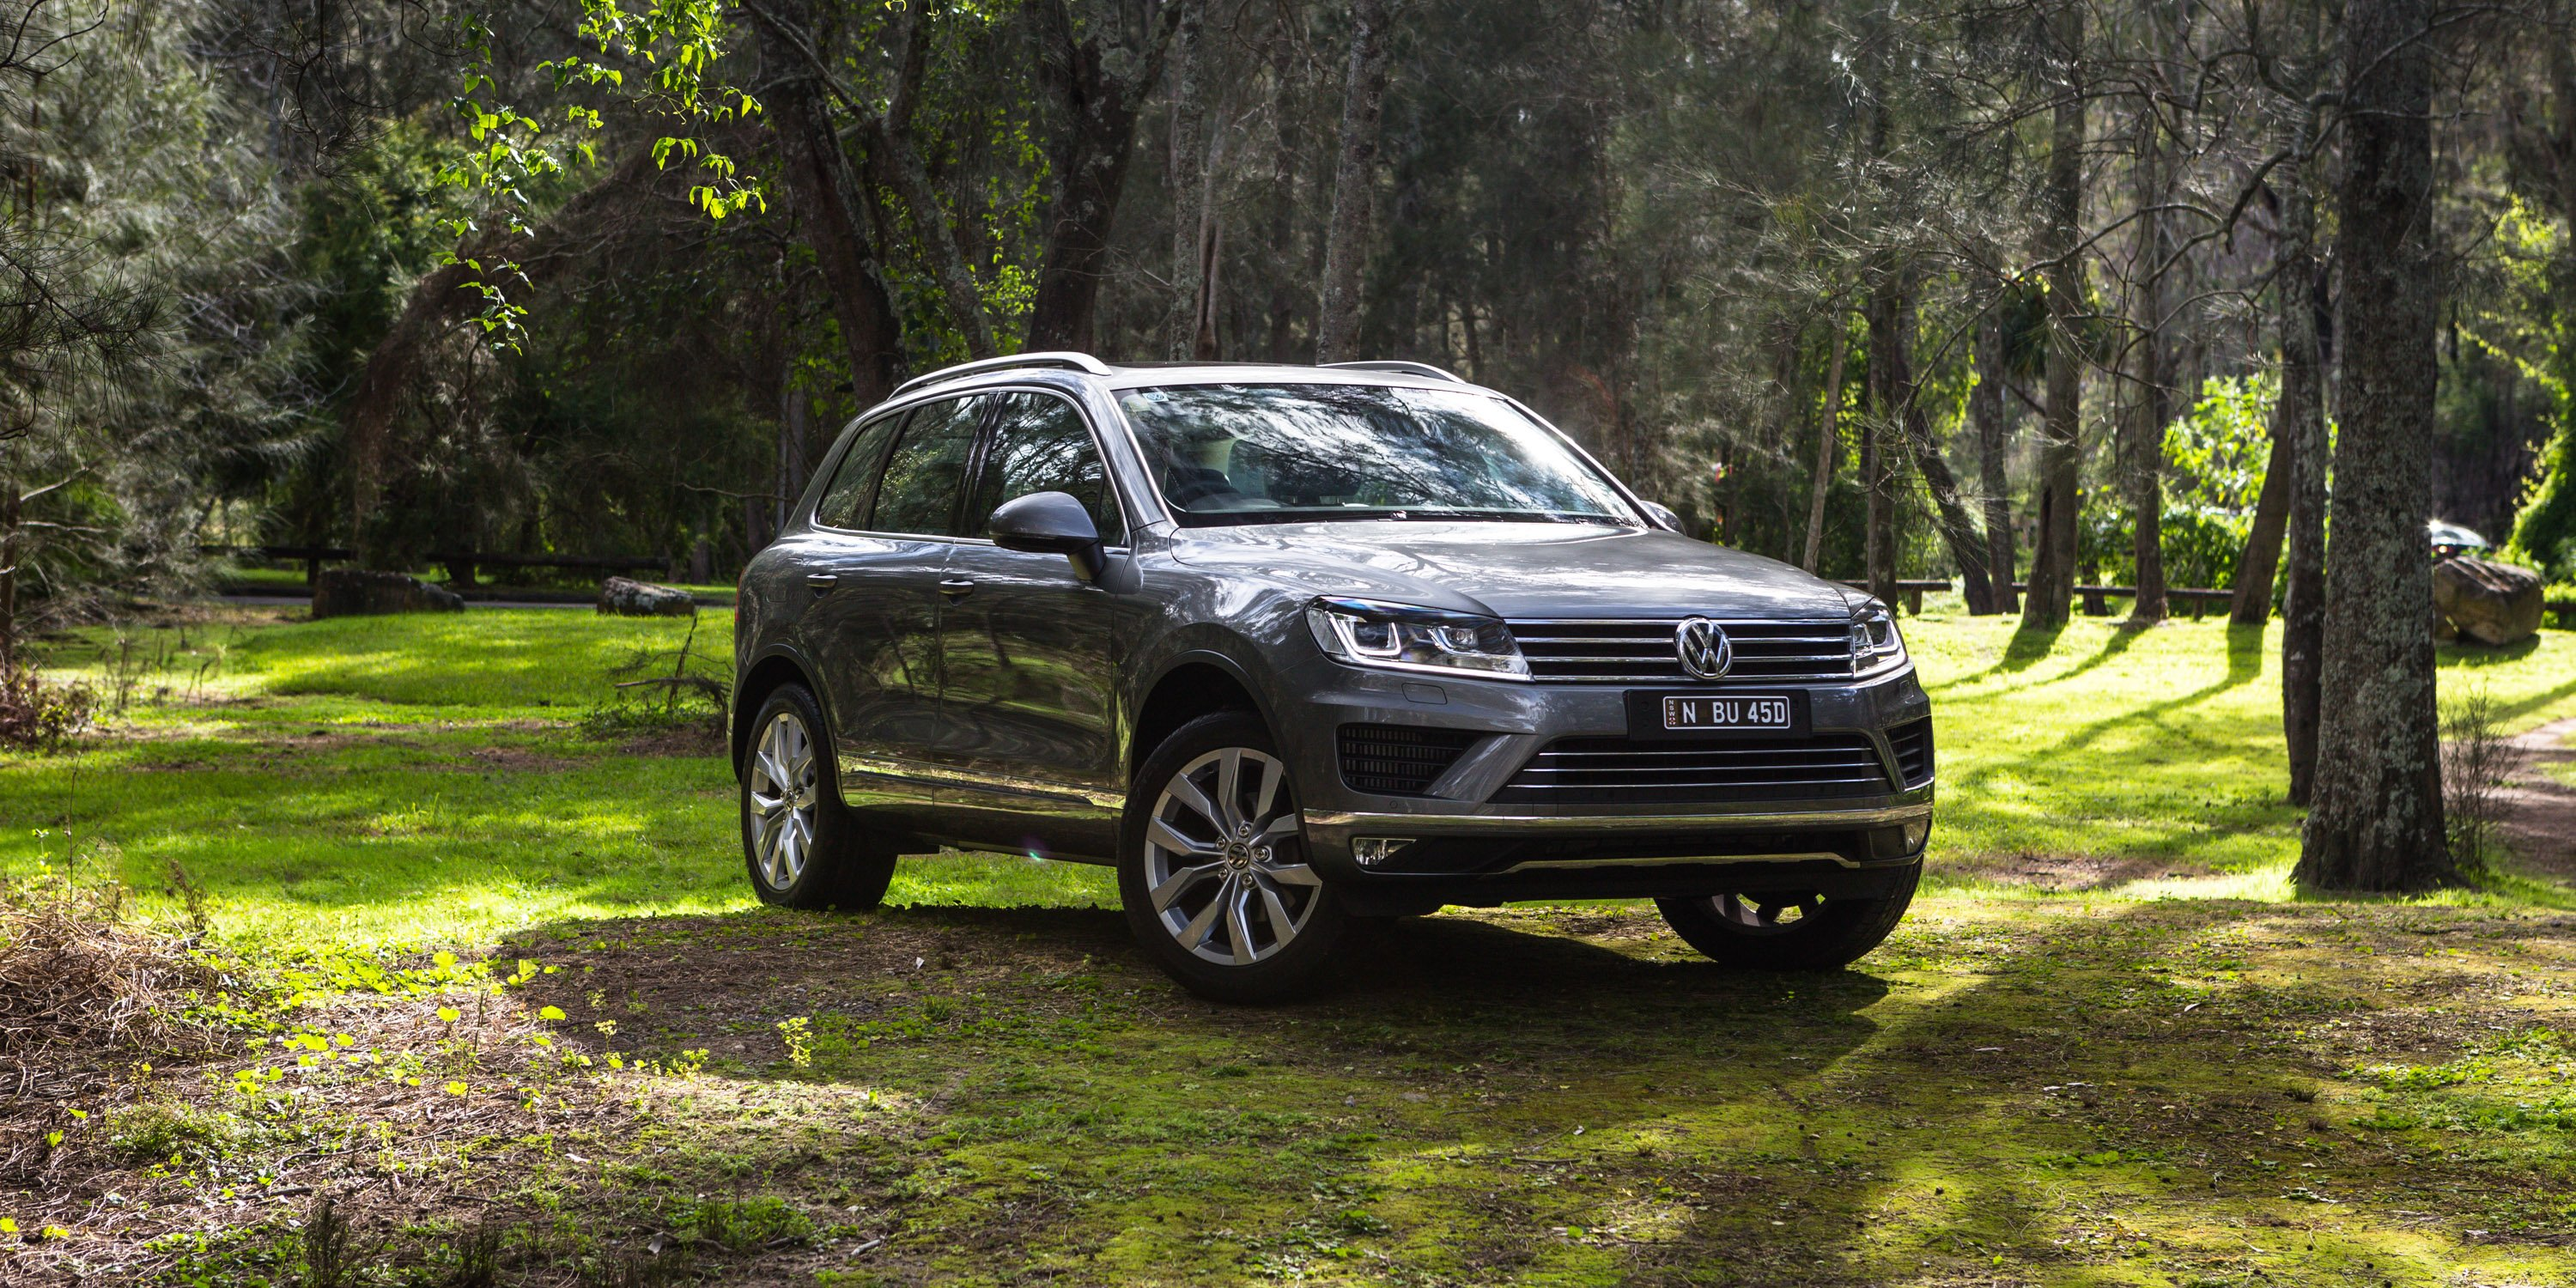 2016 volkswagen touareg v6 tdi review photos caradvice. Black Bedroom Furniture Sets. Home Design Ideas